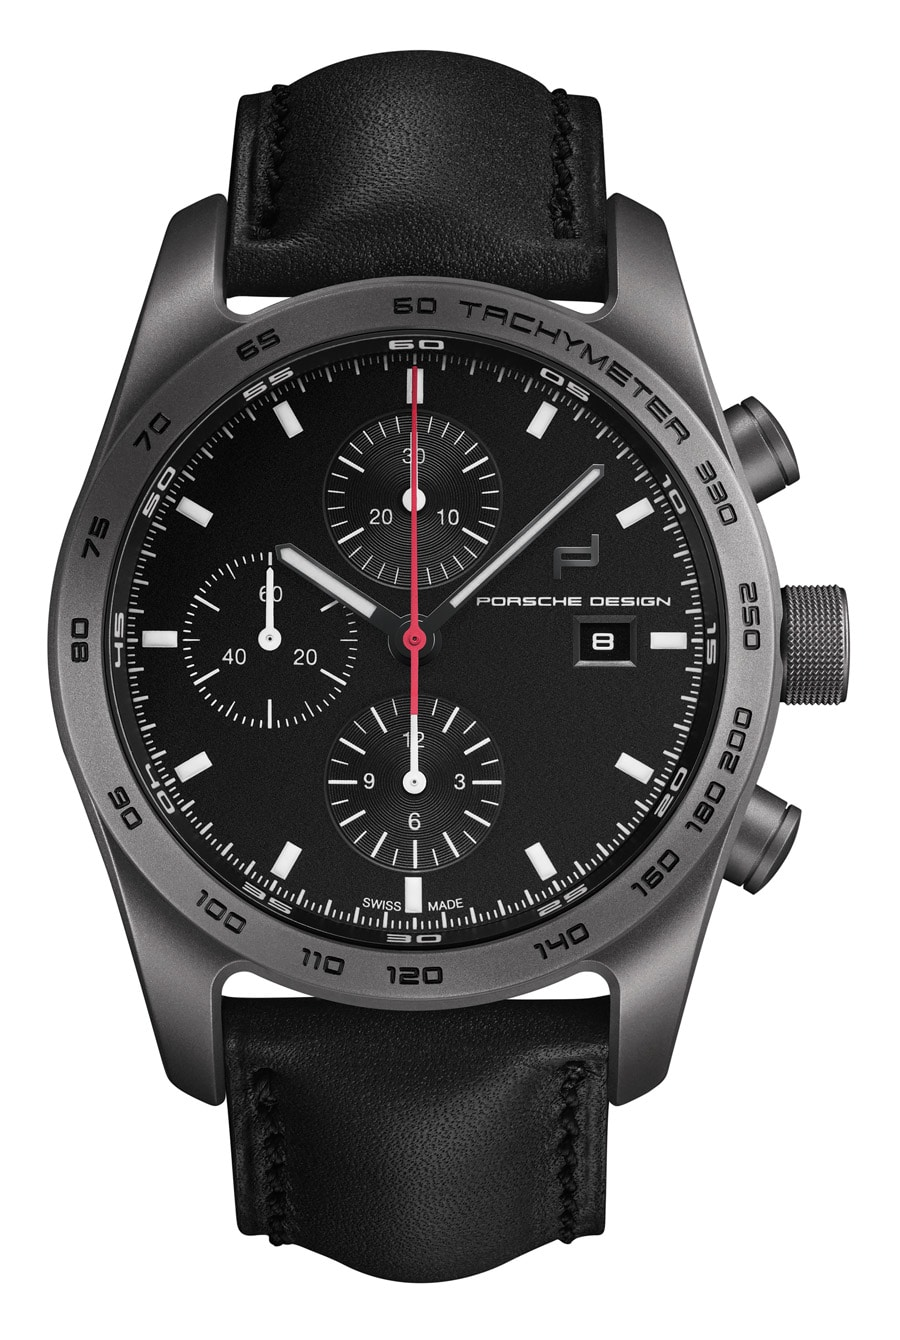 Porsche Design: Chronograph Titanium Limited Edition